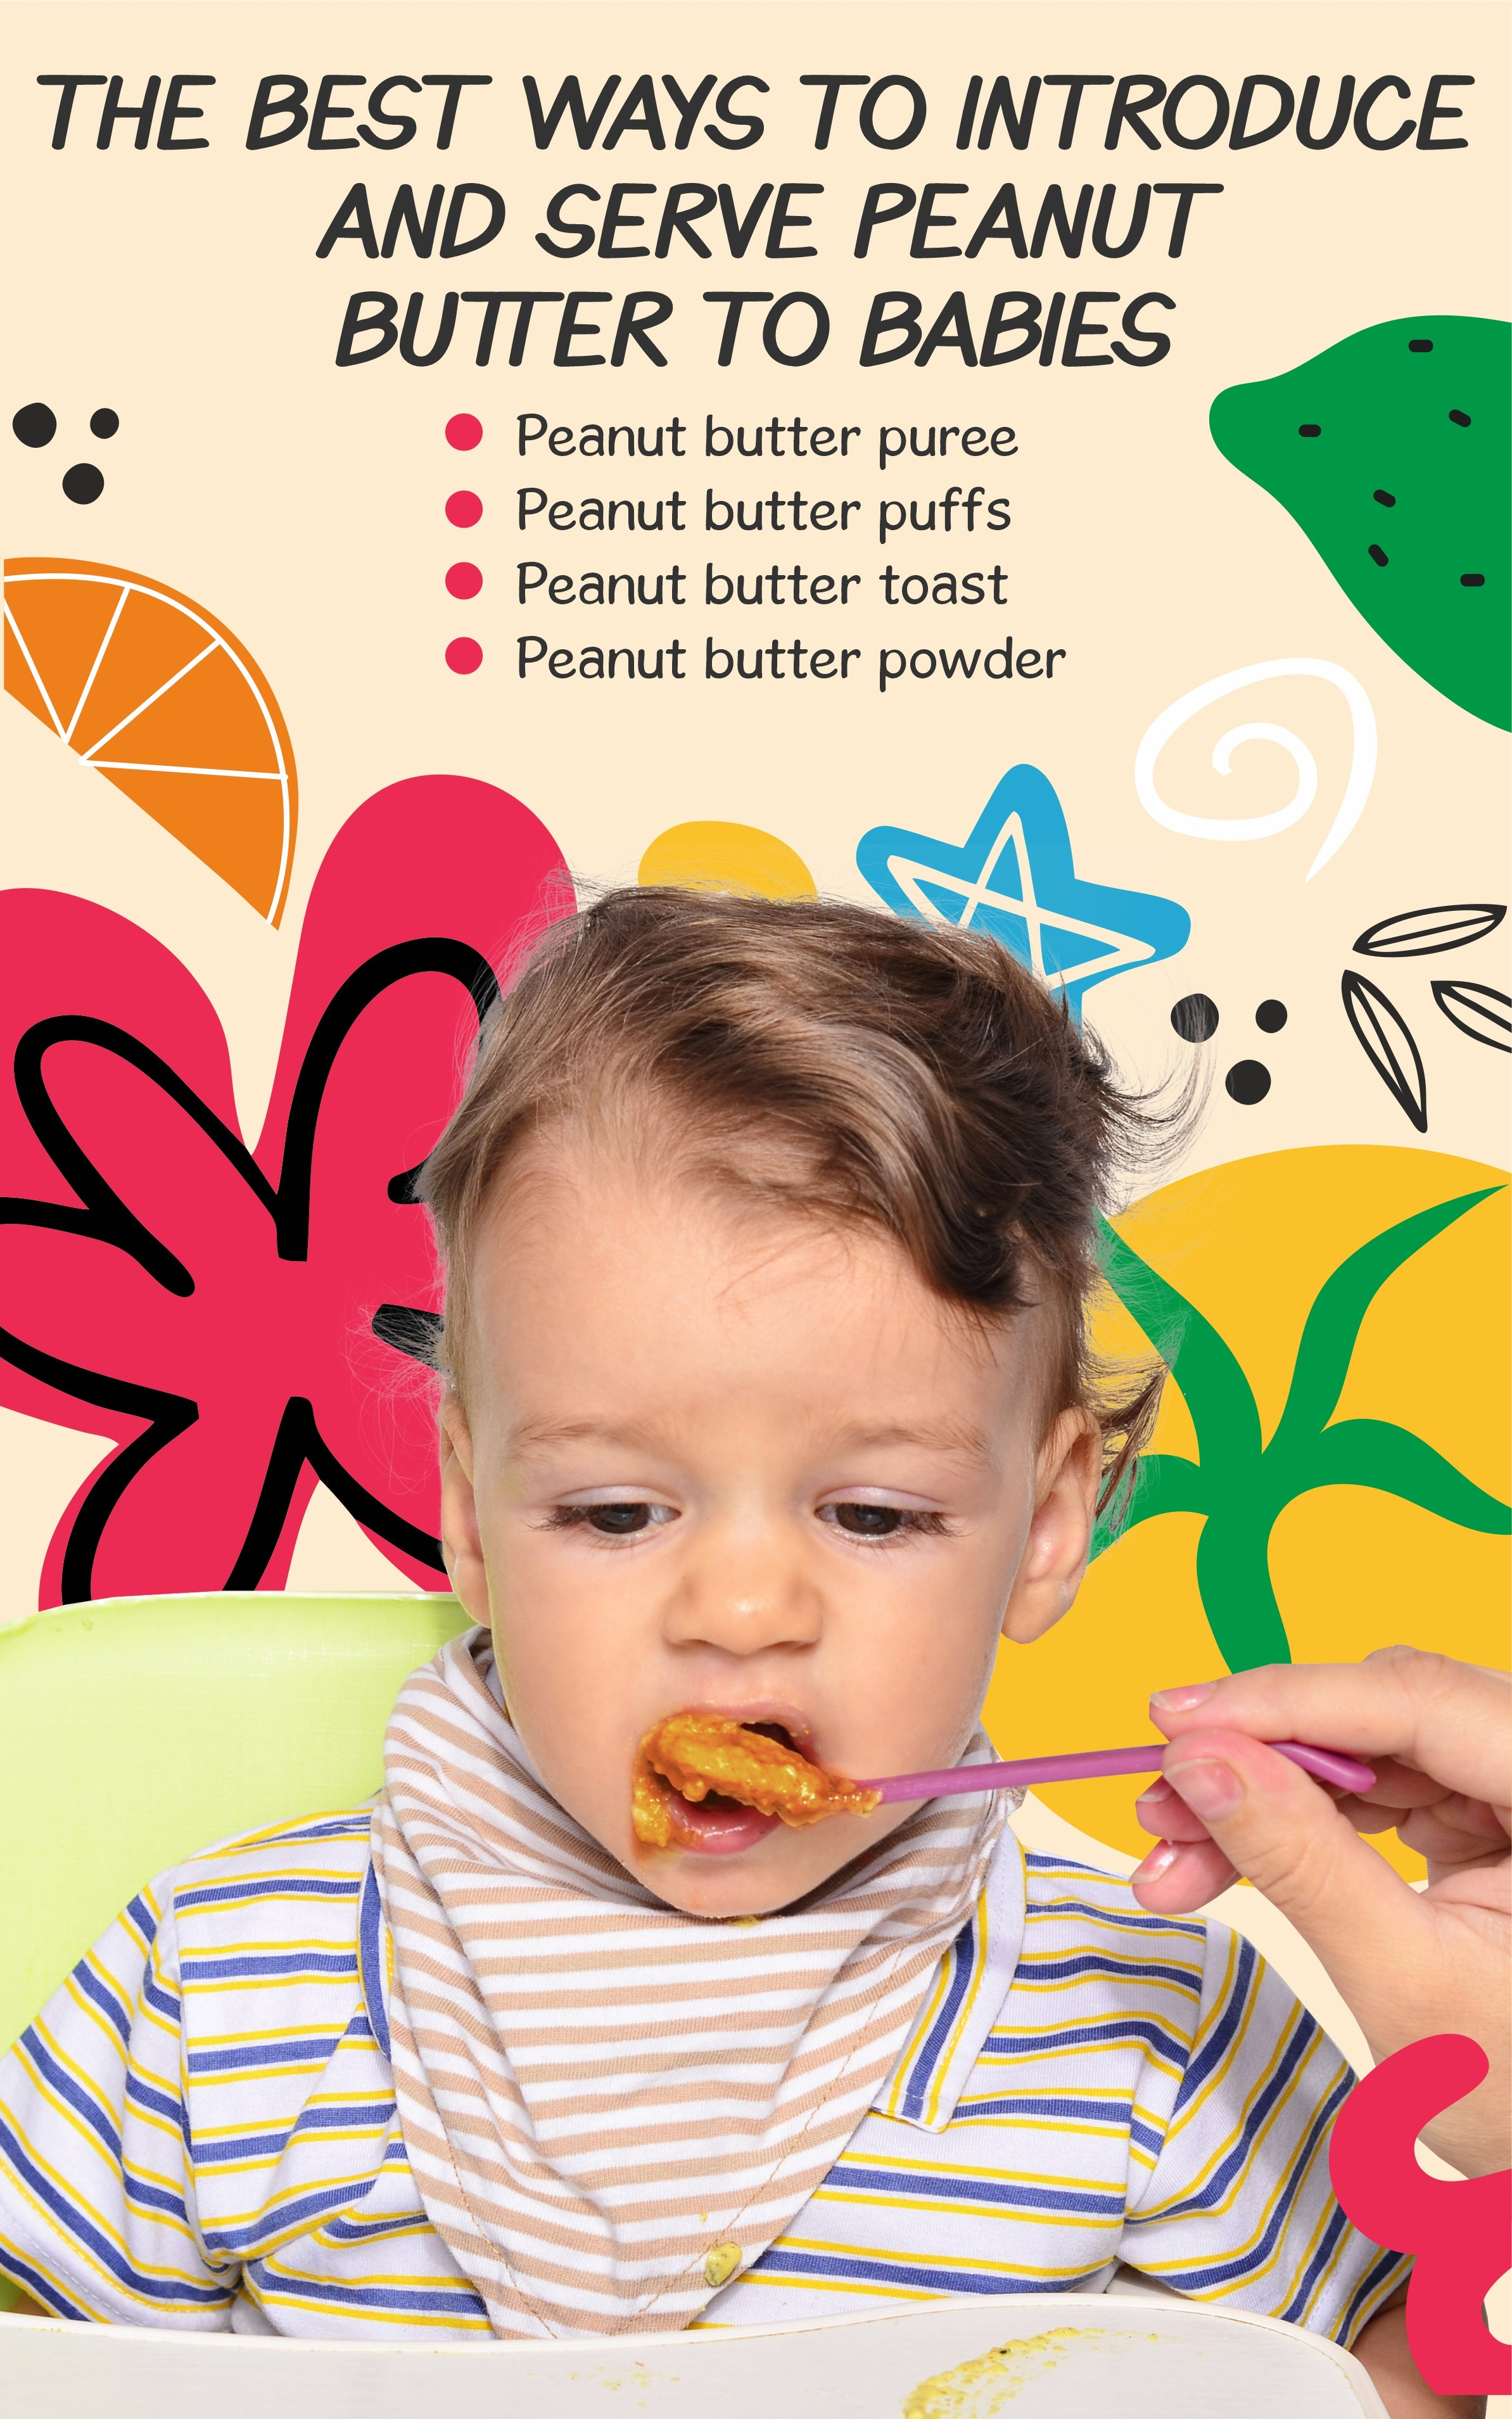 The Best Ways to Introduce and Serve Peanut Butter to Babies